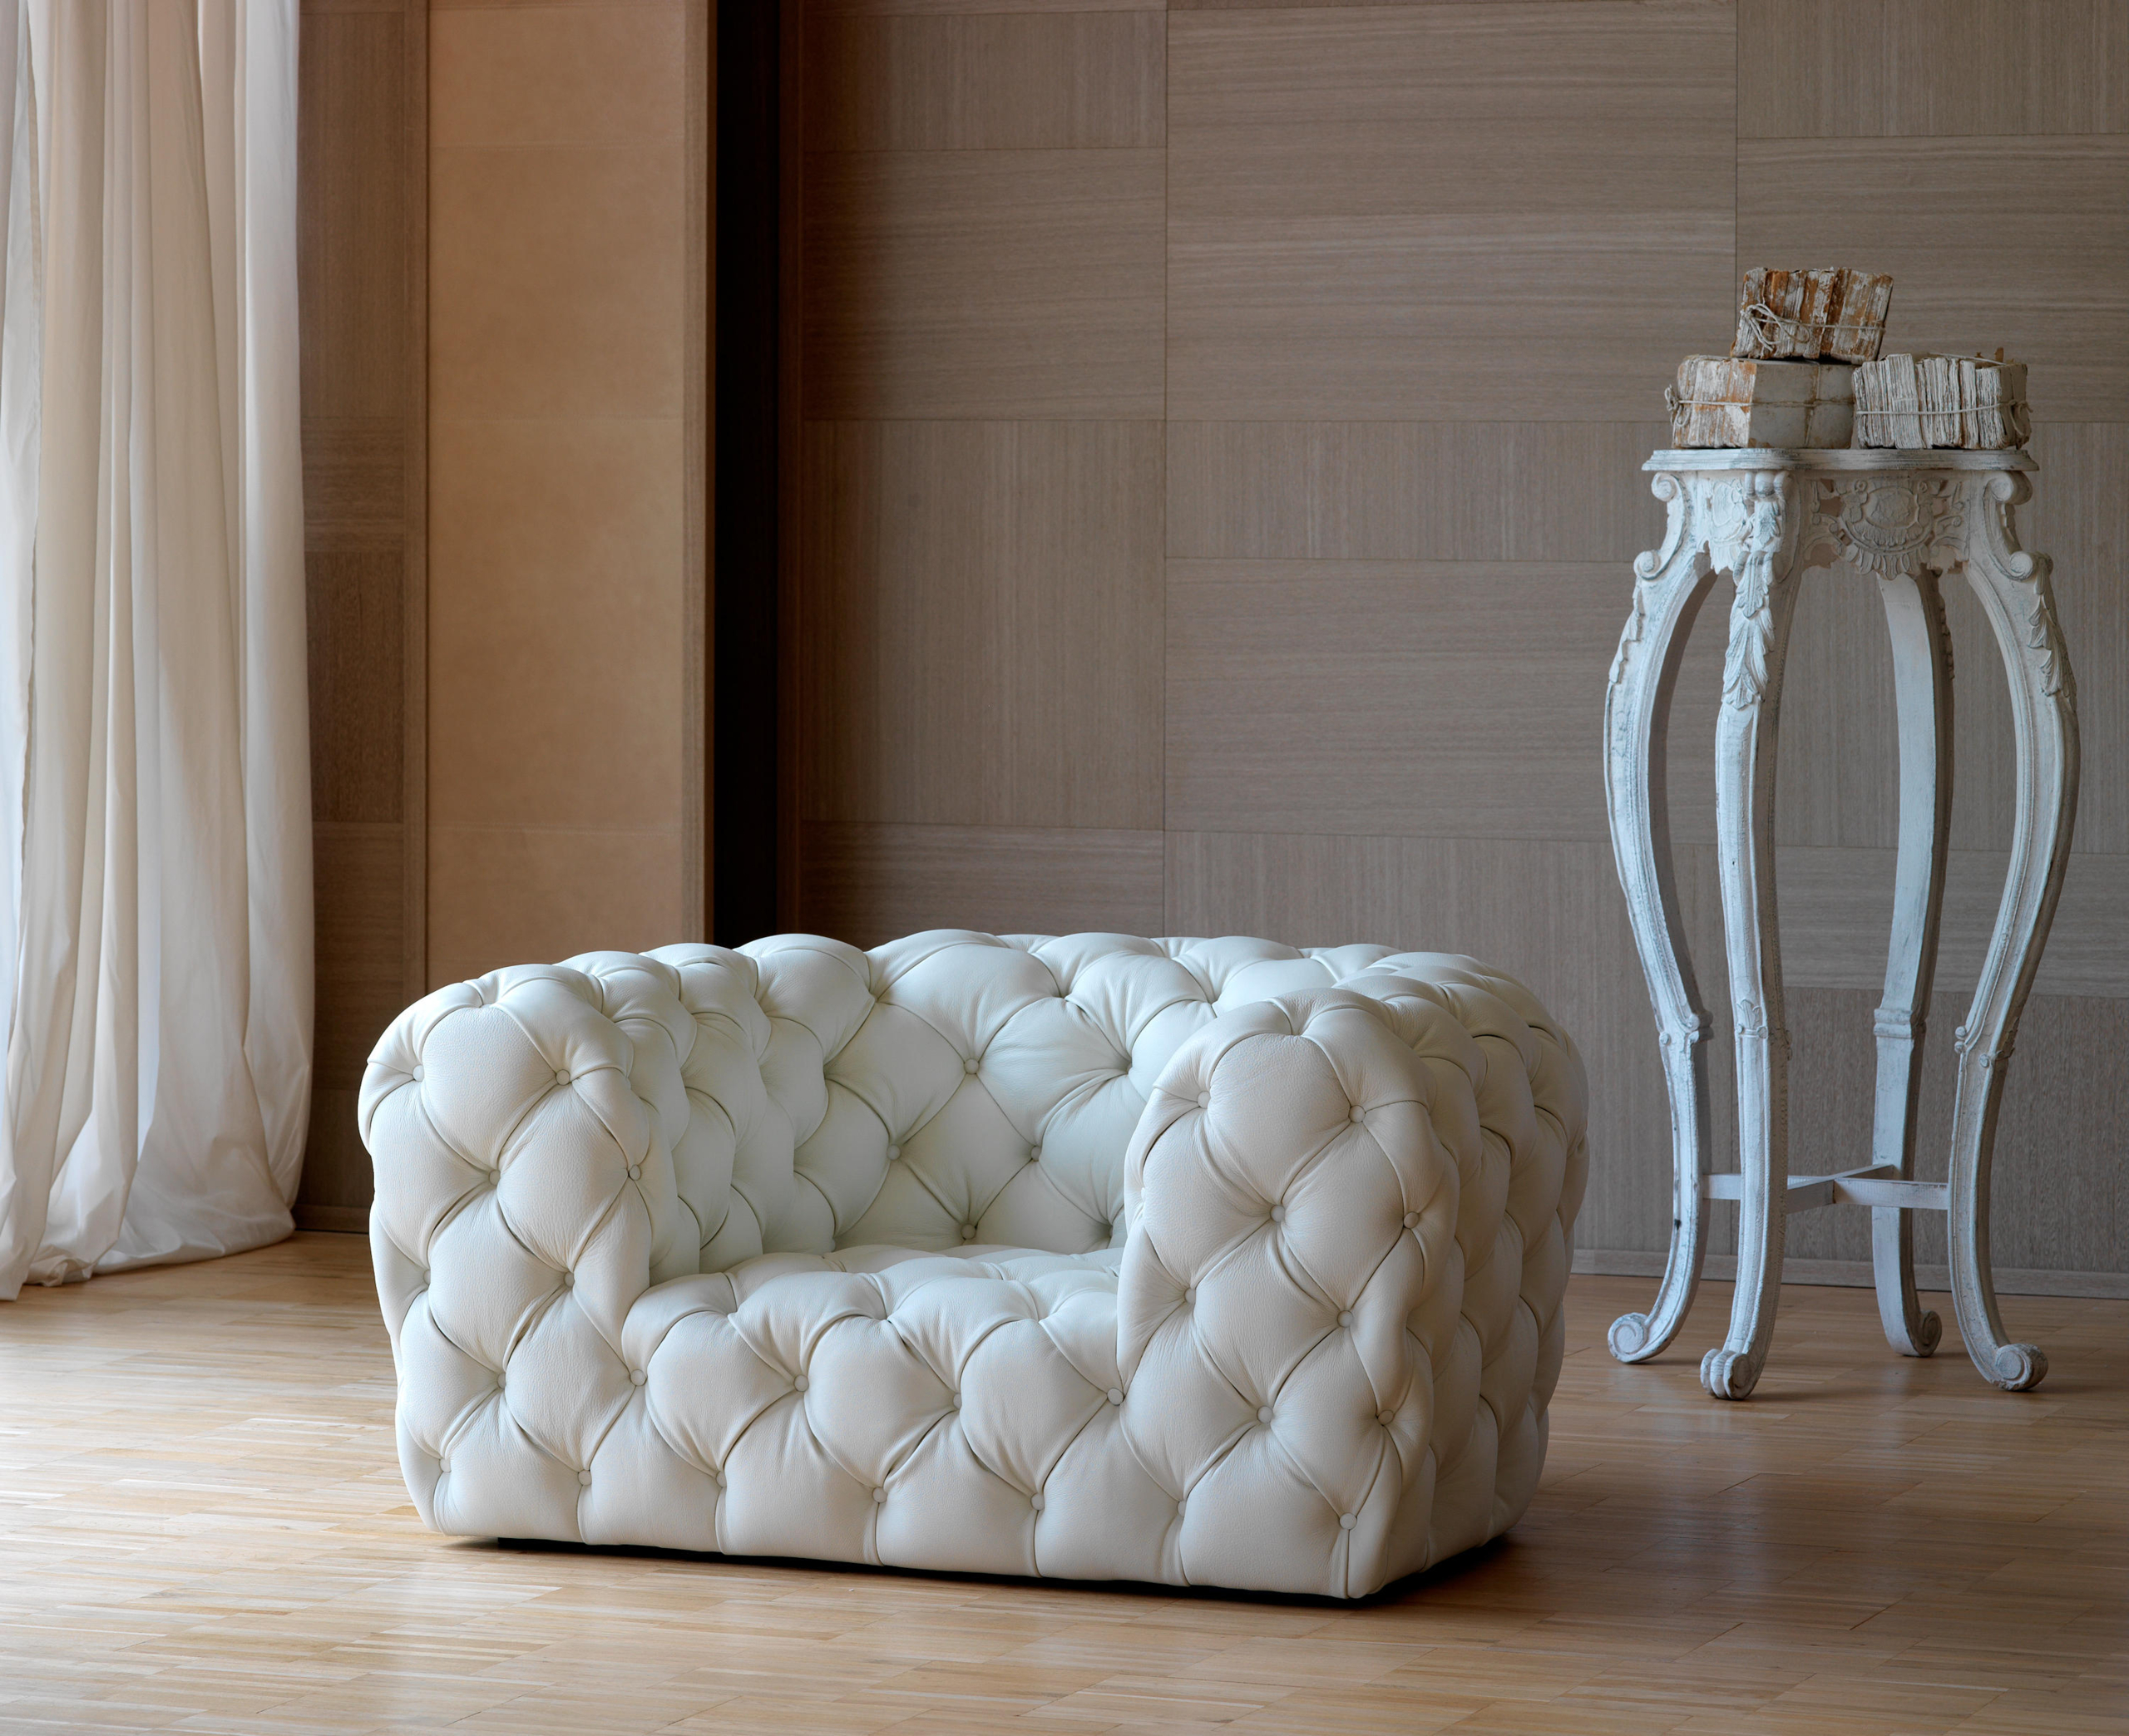 white tufted leather sofa natuzzi arona 2 seater bed ideas on foter by baxter